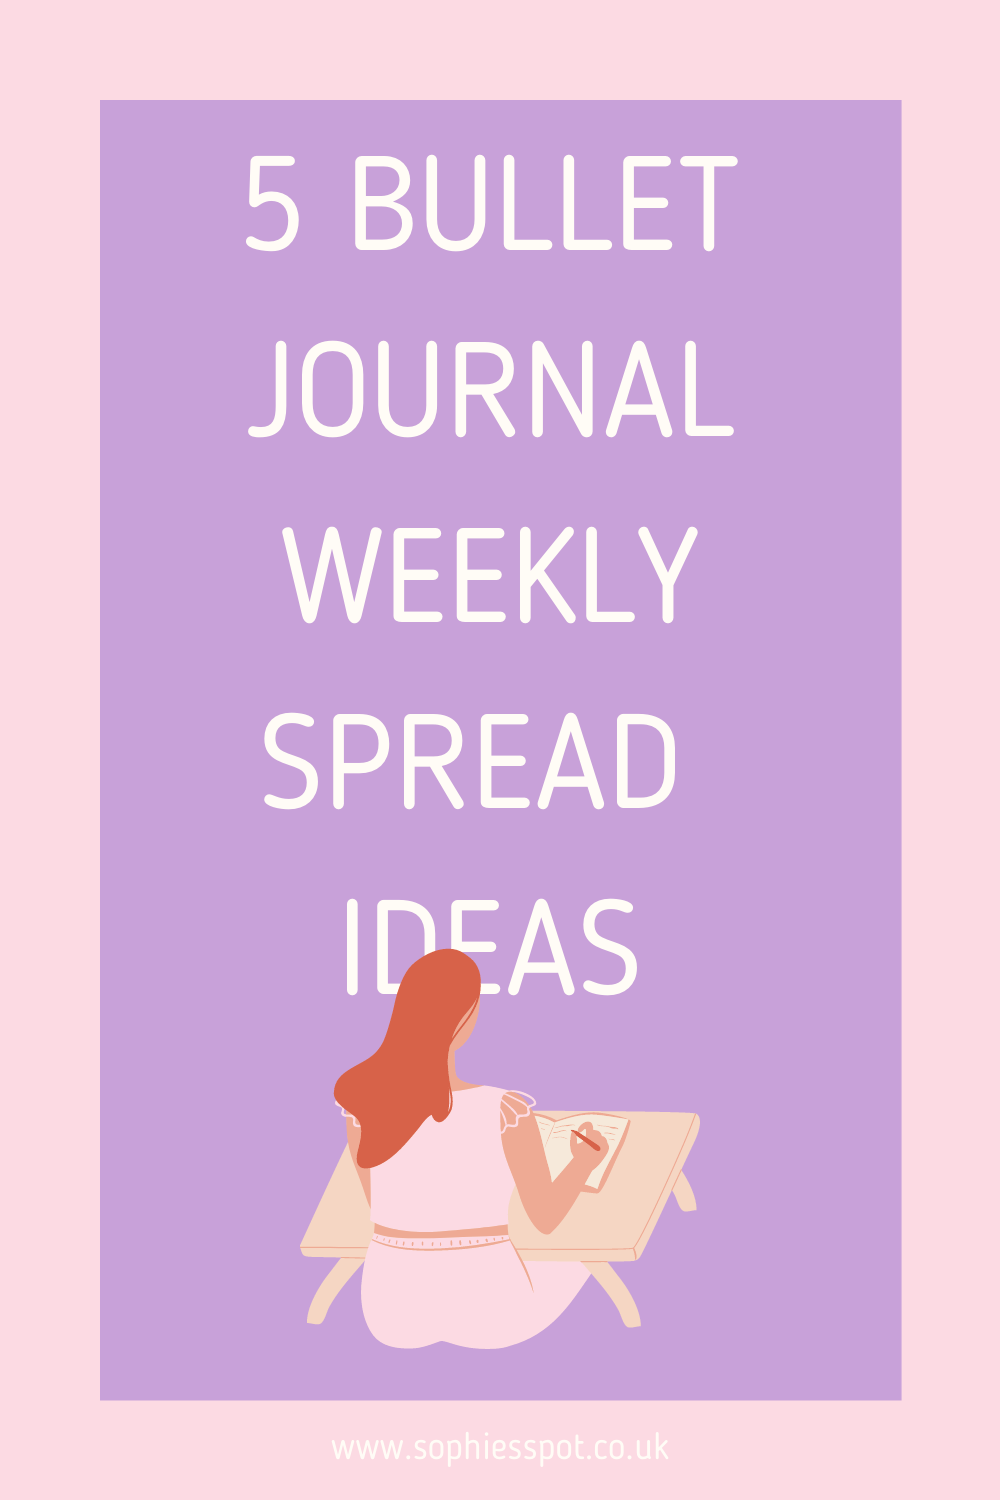 5 bullet journal weekly spread ideas graphic